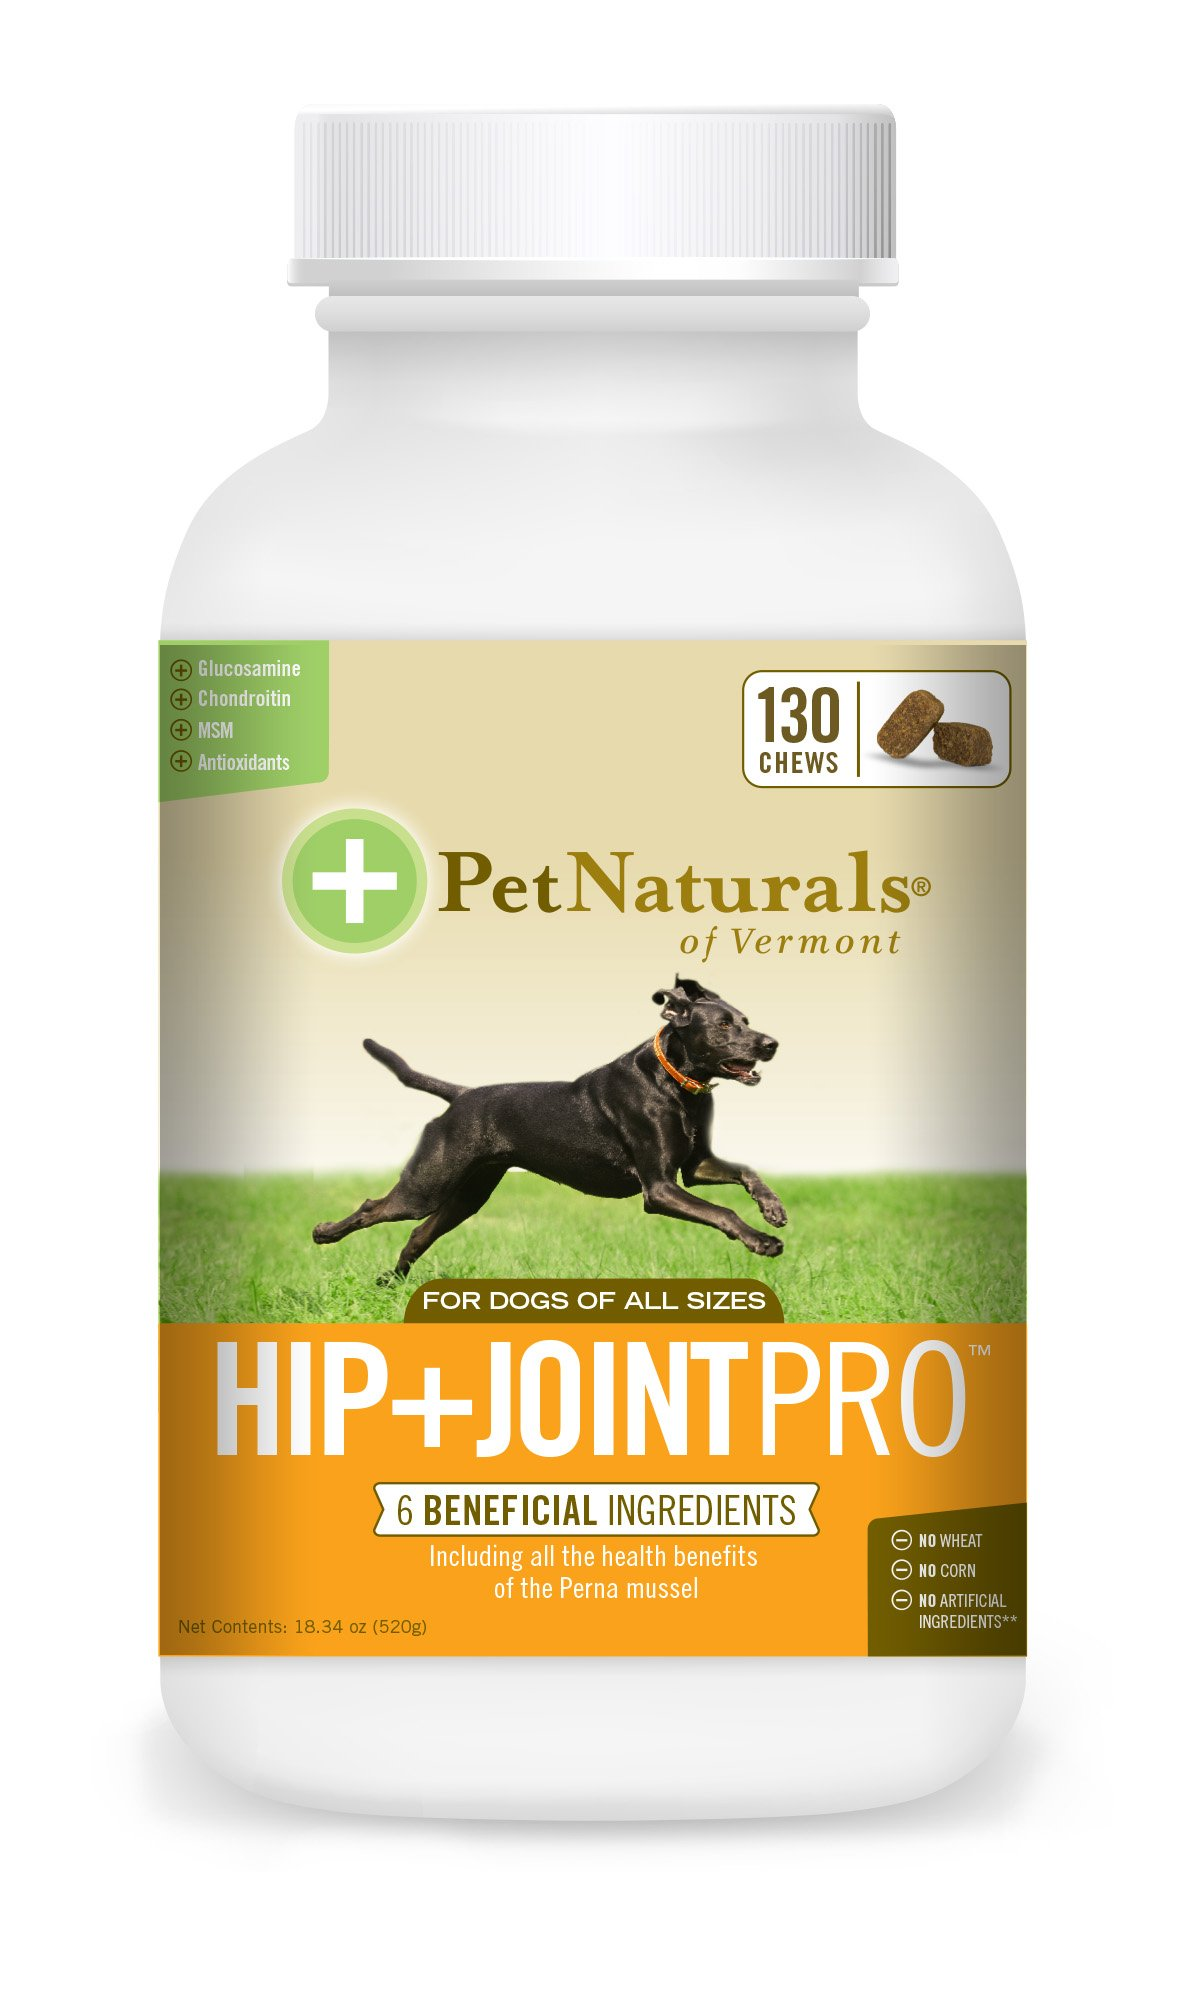 Pet Naturals of Vermont - Hip + Joint PRO, Daily Hip and Joint Supplement for Large Dogs, 130 Bite-Sized Chews